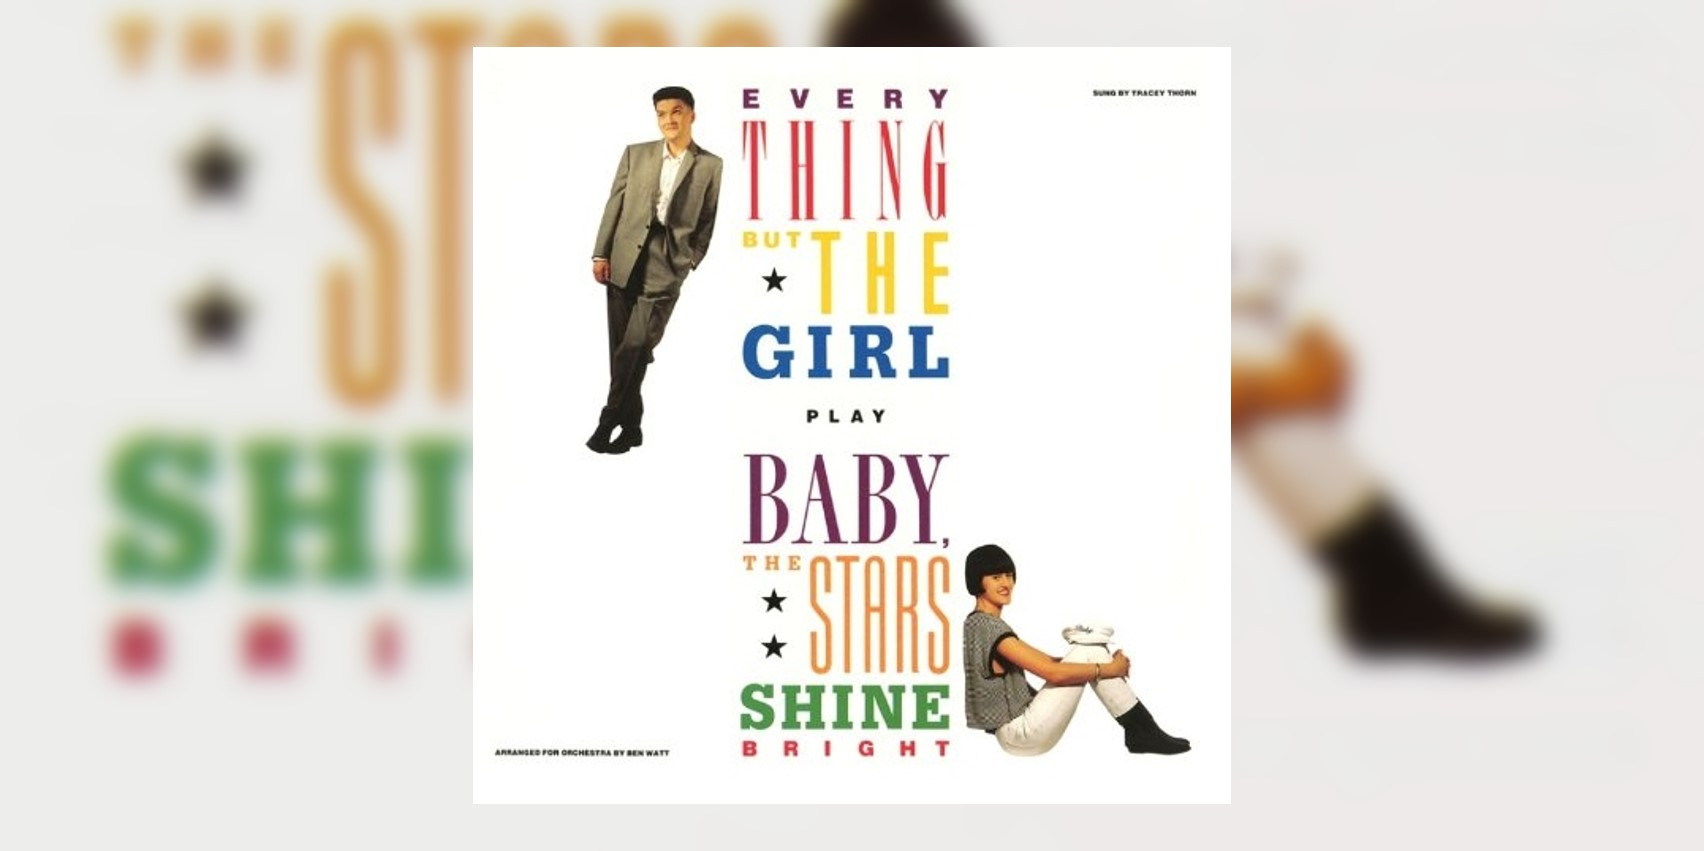 EverythingButTheGirl_BabyTheStarsShineBright_MainImage.jpg